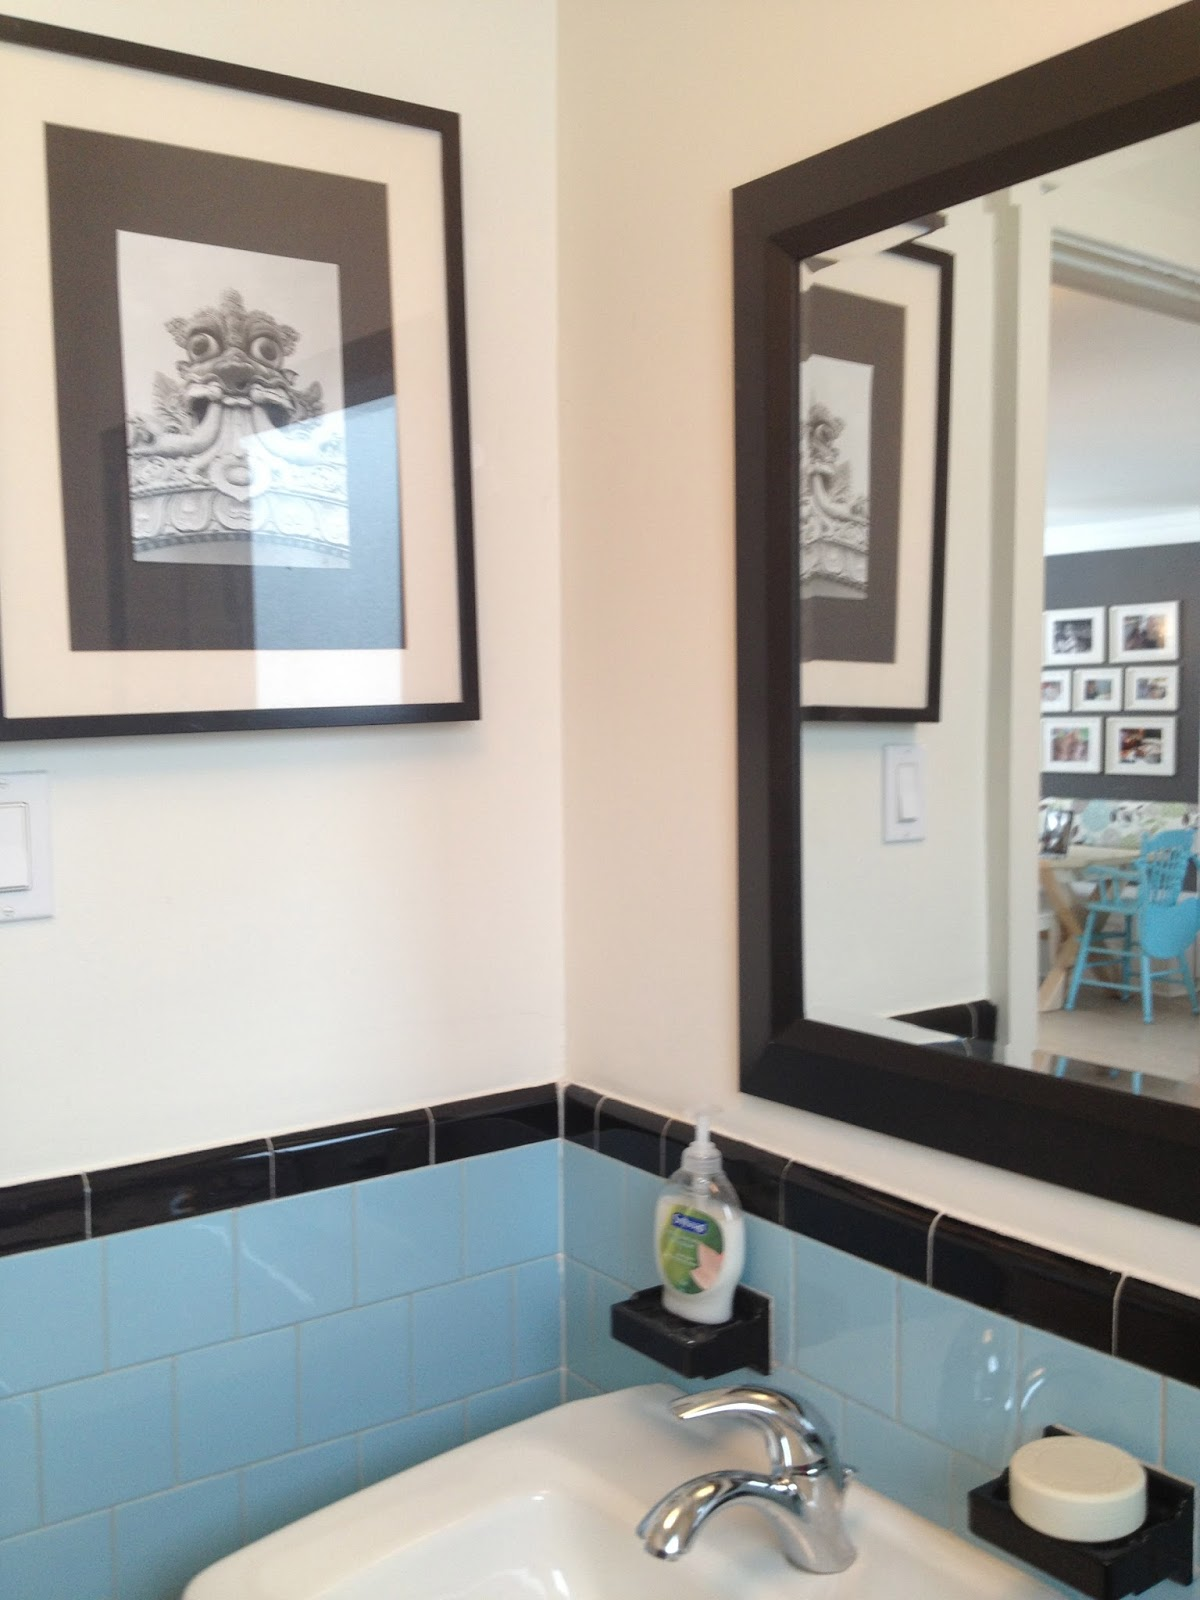 How to Stage an Old Bathroom from ZenShmen - Home Staging - DIY